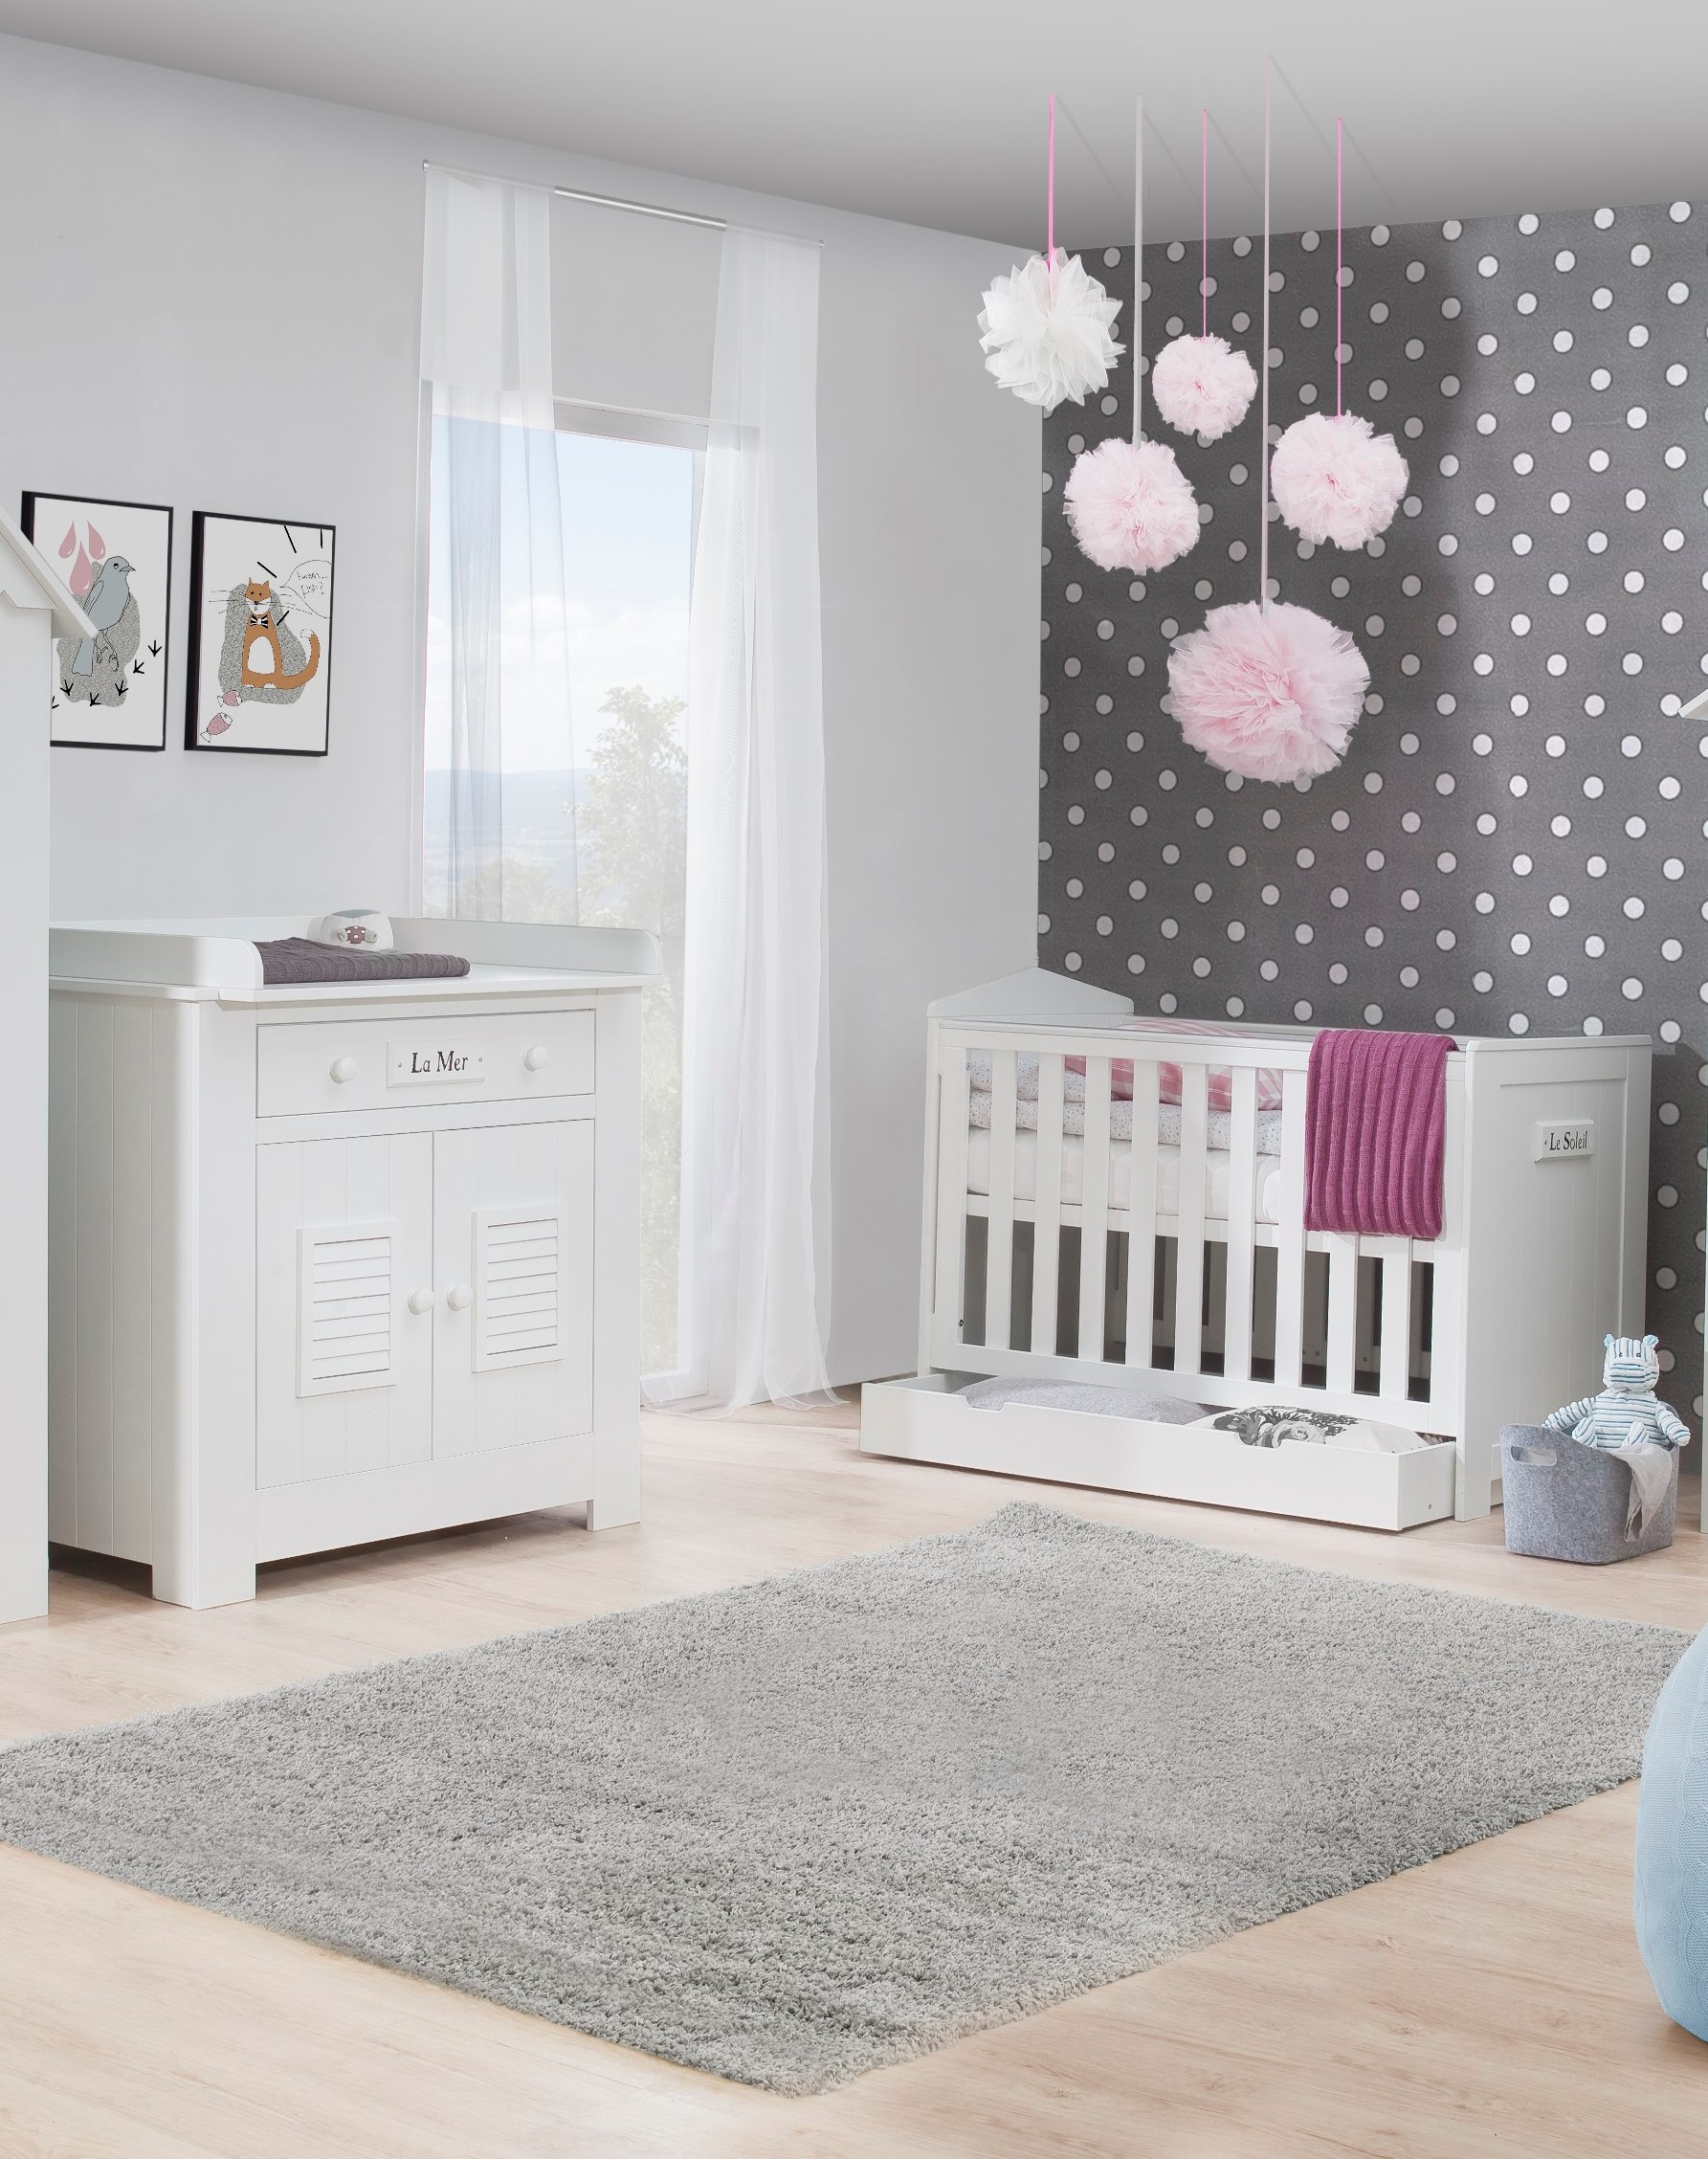 pinio plage 3 meubles lit 120x60 commode armoire 3 portes baby boutique en ligne. Black Bedroom Furniture Sets. Home Design Ideas